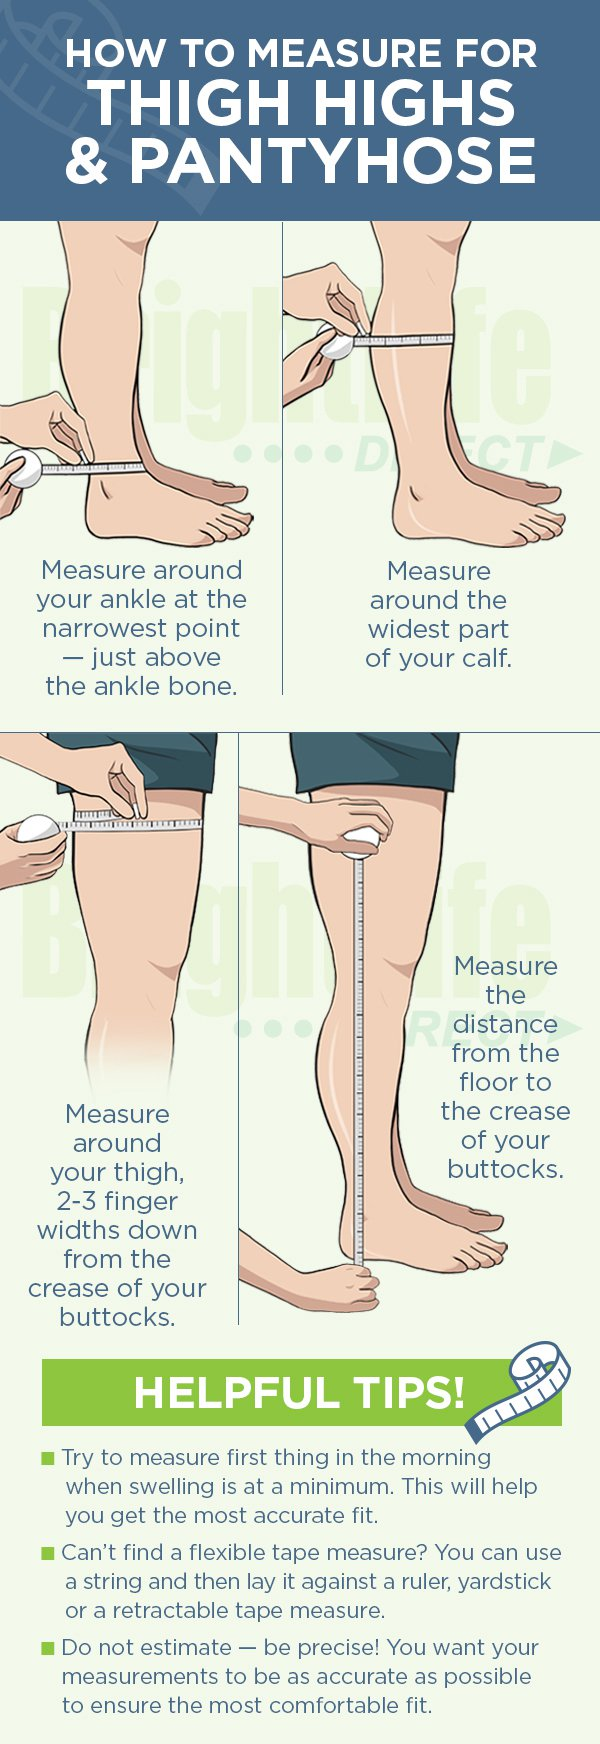 How to Measure Thigh High Compression Stockings - First measure around your ankle at the slimmest point. Next, measure your calf at the widest point. Then, measure your upper thigh circumference. Finally, measure your lower leg length from the floor to the bend in the knee.